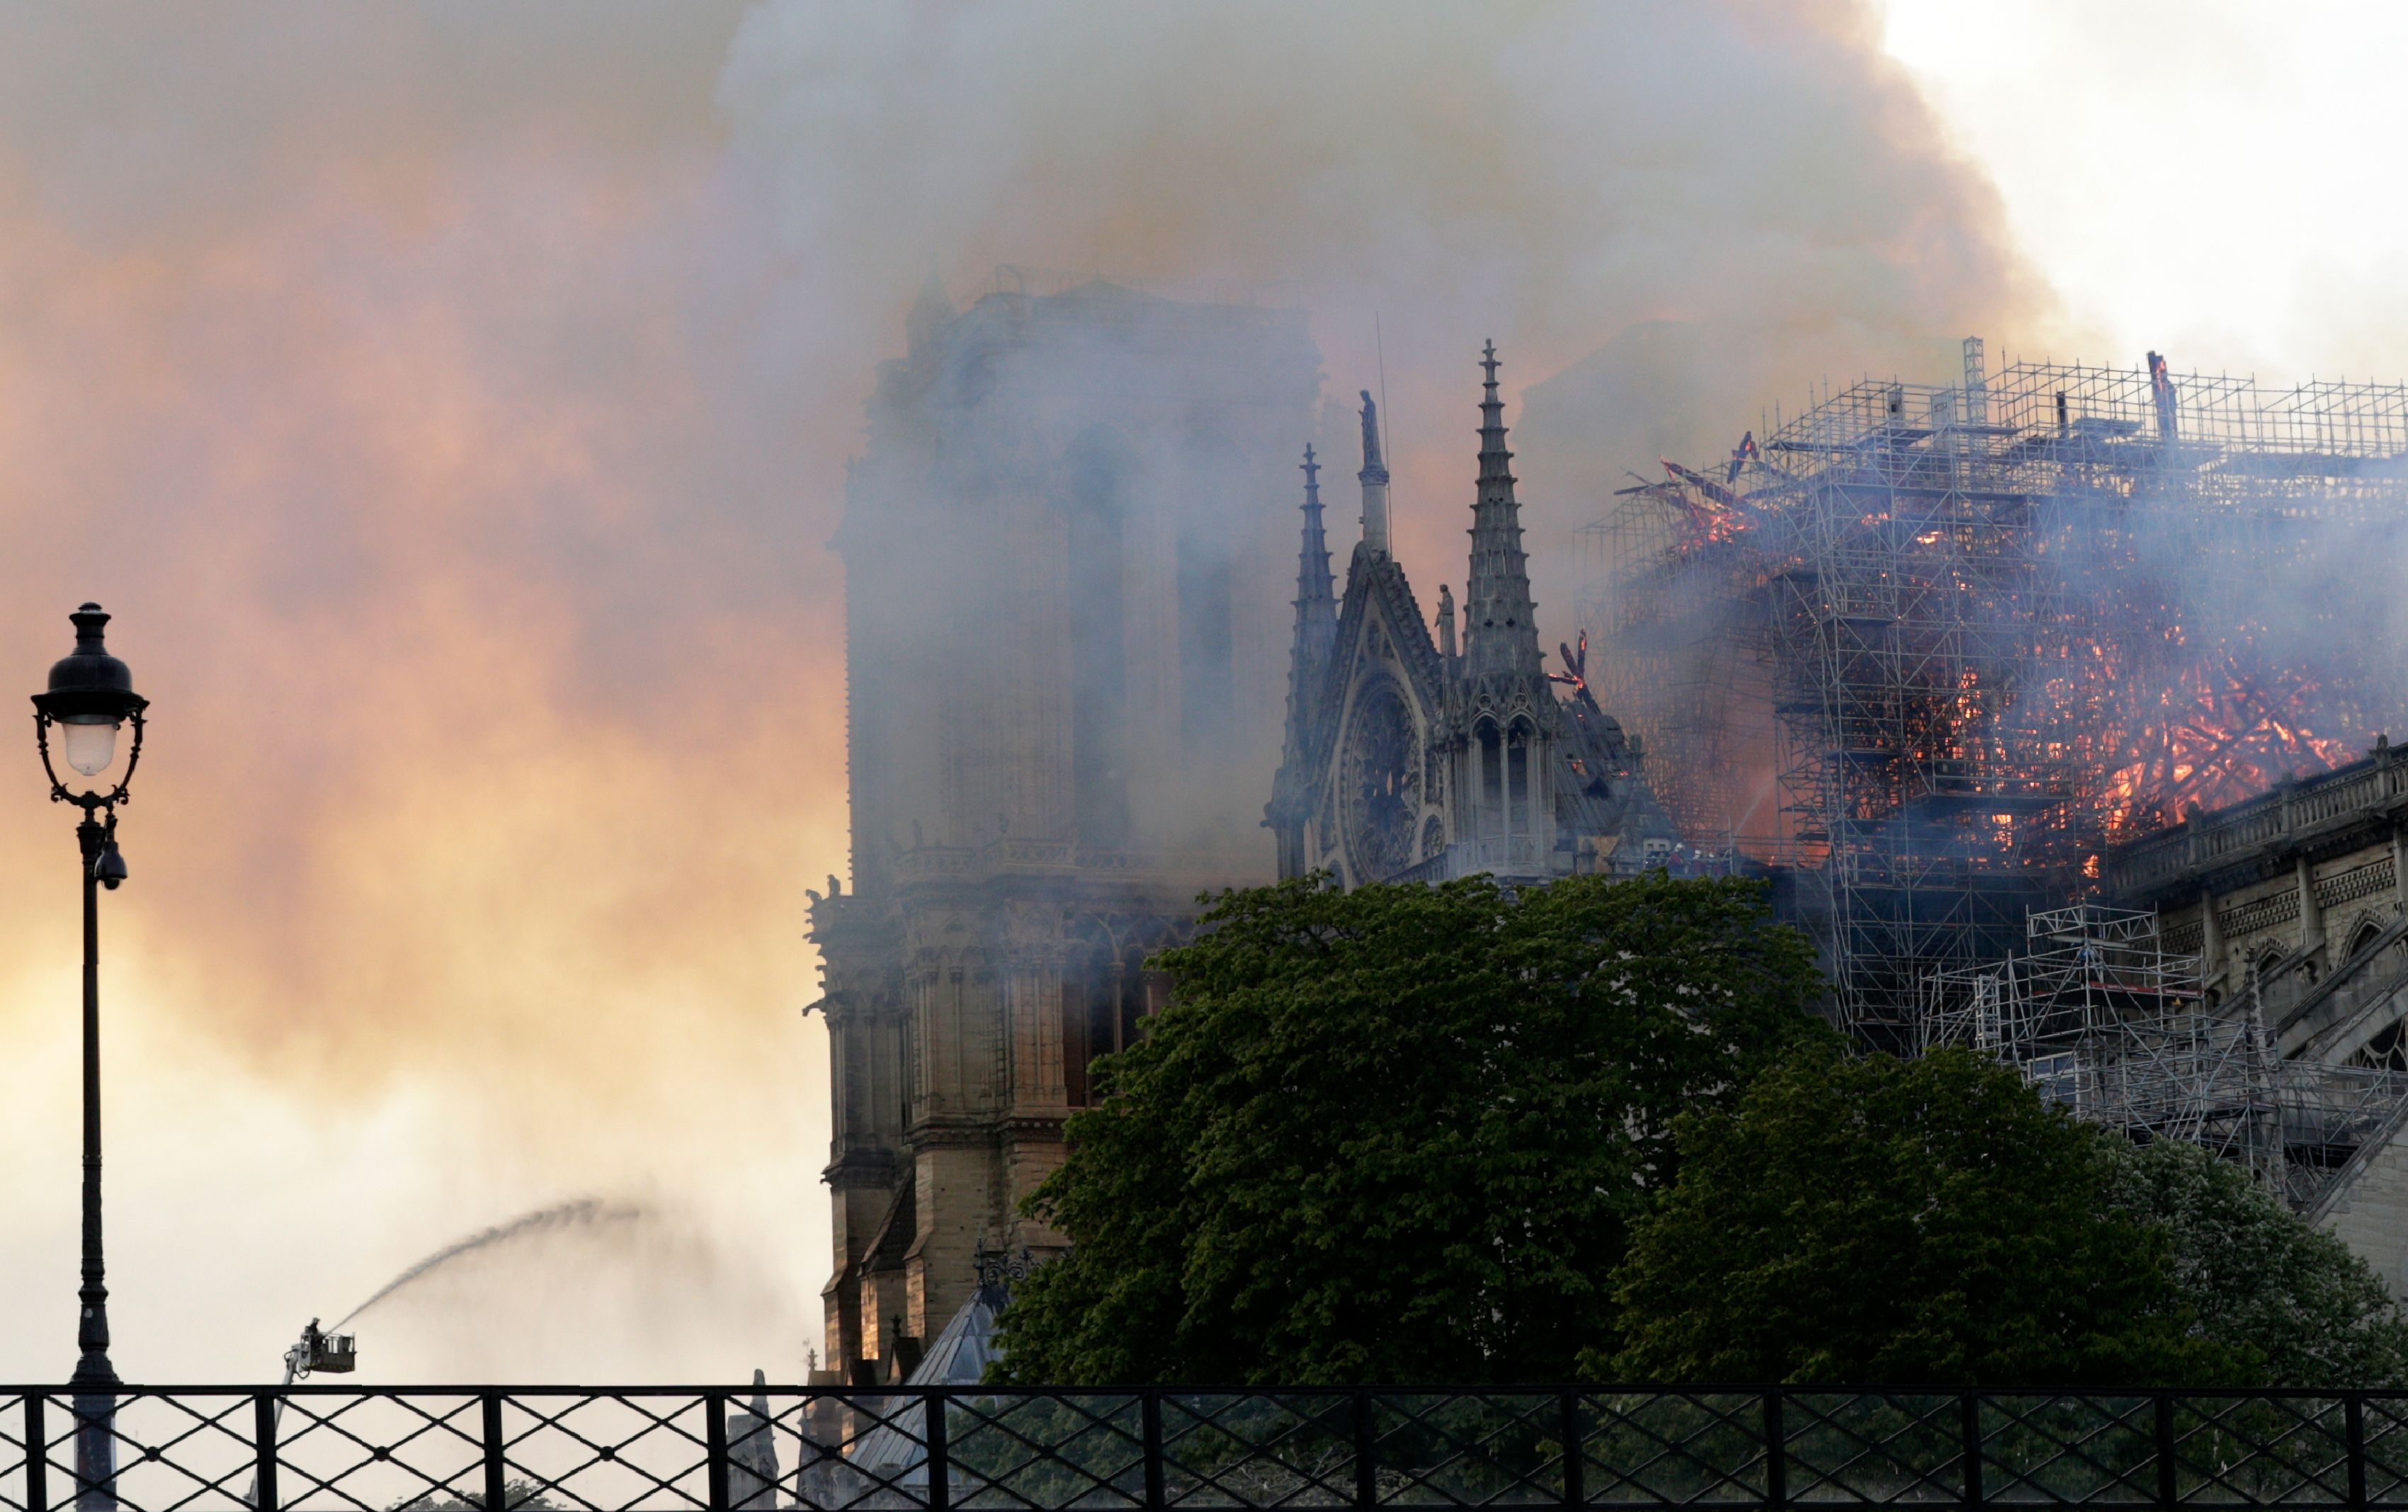 A firefighter uses a hose to douse flames and smoke billowing from the roof at Notre-Dame Cathedral in Paris on April 15, 2019. - A fire broke out at the landmark Notre-Dame Cathedral in central Paris, potentially involving renovation works being carried out at the site, the fire service said.Images posted on social media showed flames and huge clouds of smoke billowing above the roof of the gothic cathedral, the most visited historic monument in Europe. (Photo by Geoffroy VAN DER HASSELT / AFP)        (Photo credit should read GEOFFROY VAN DER HASSELT/AFP/Getty Images)